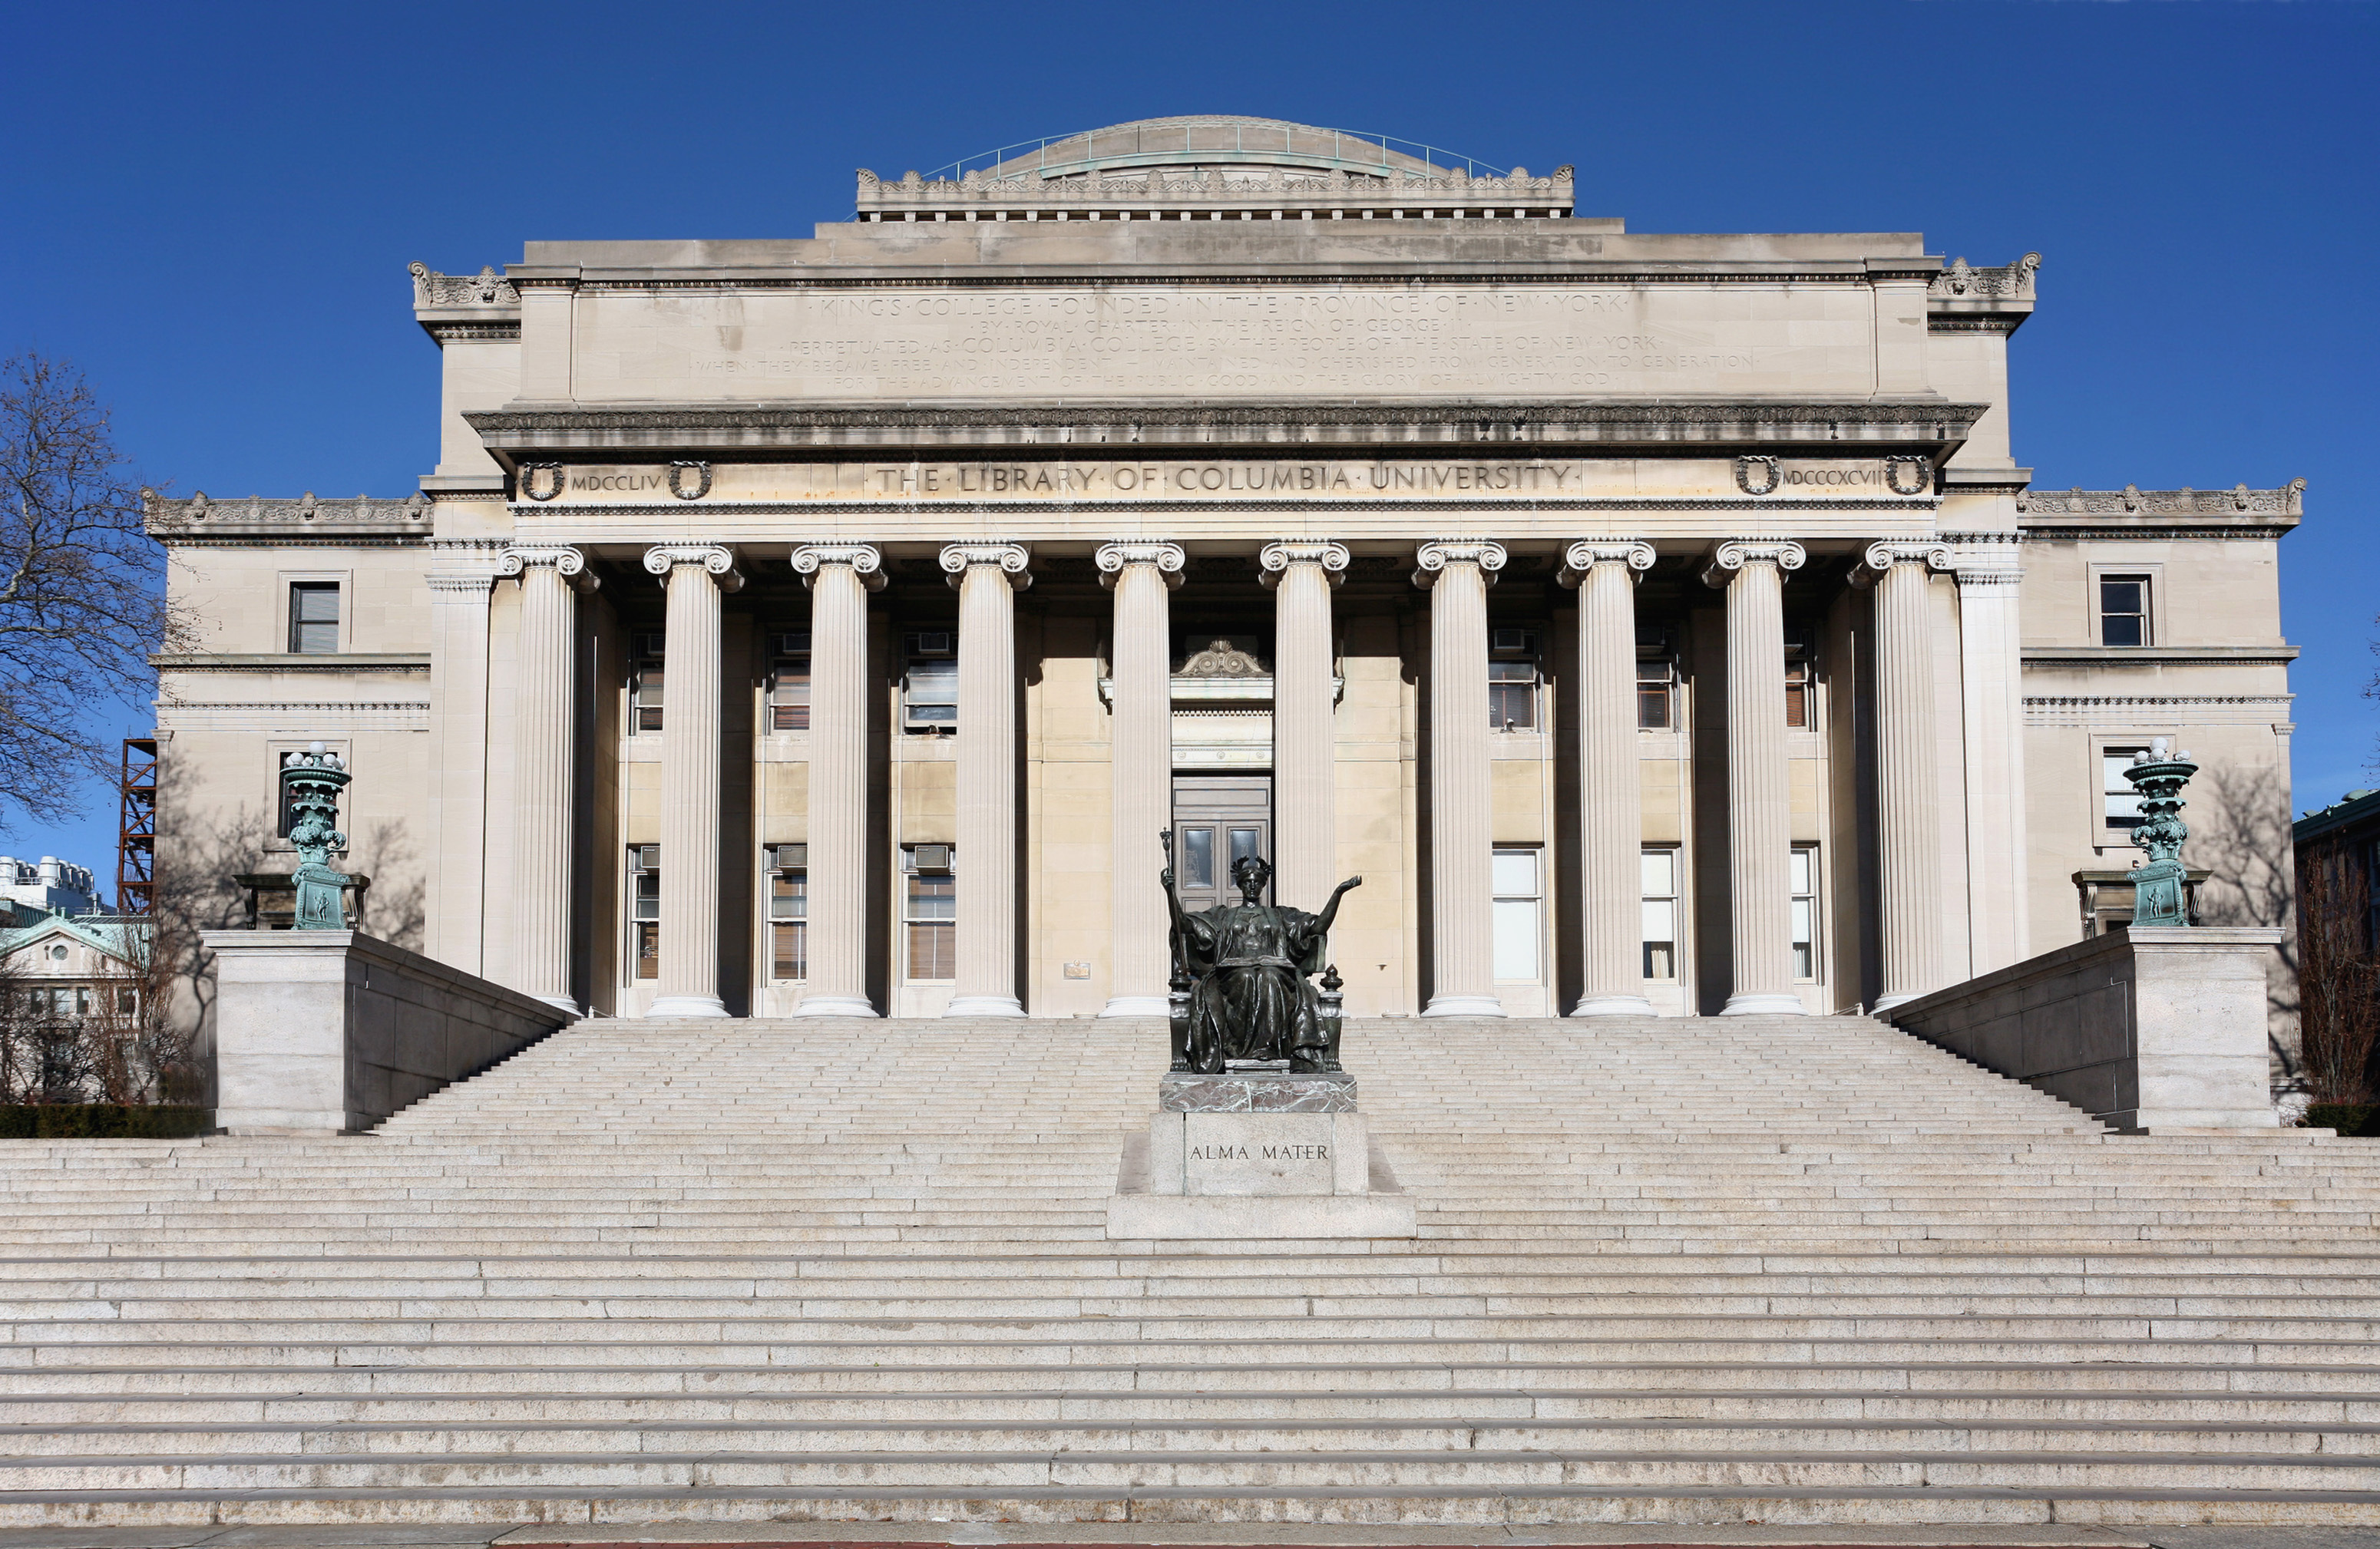 Panhel Makes Up 55% Of Greeks At Columbia, But Only Gets 21% Of The Vote